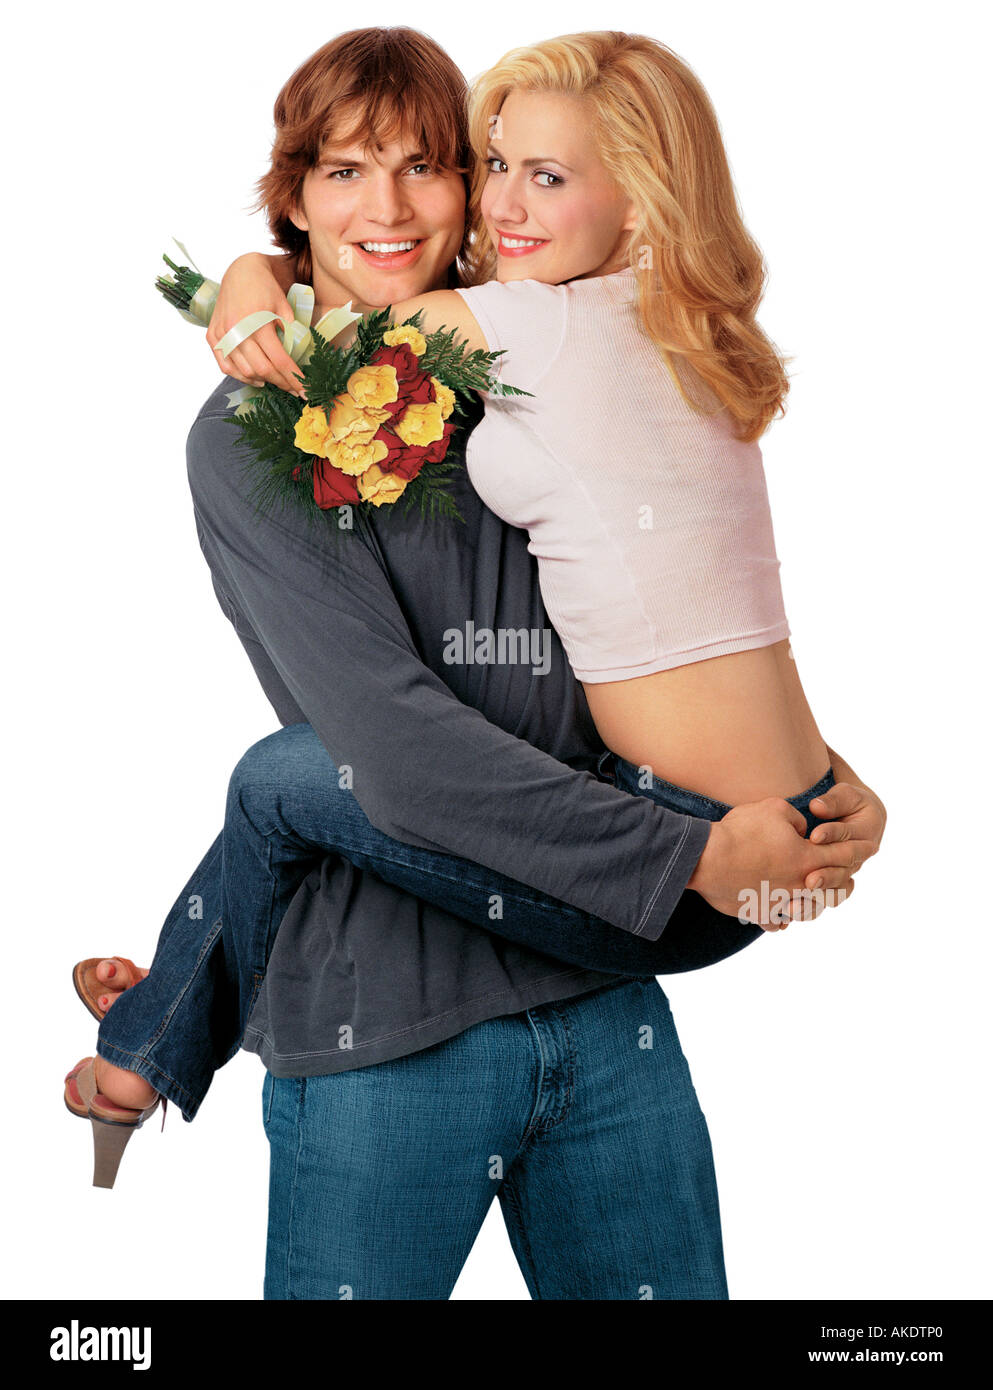 JUST MARRIED 2003 TCF film with Brittany Murphy and Ashton Kutcher - Stock Image